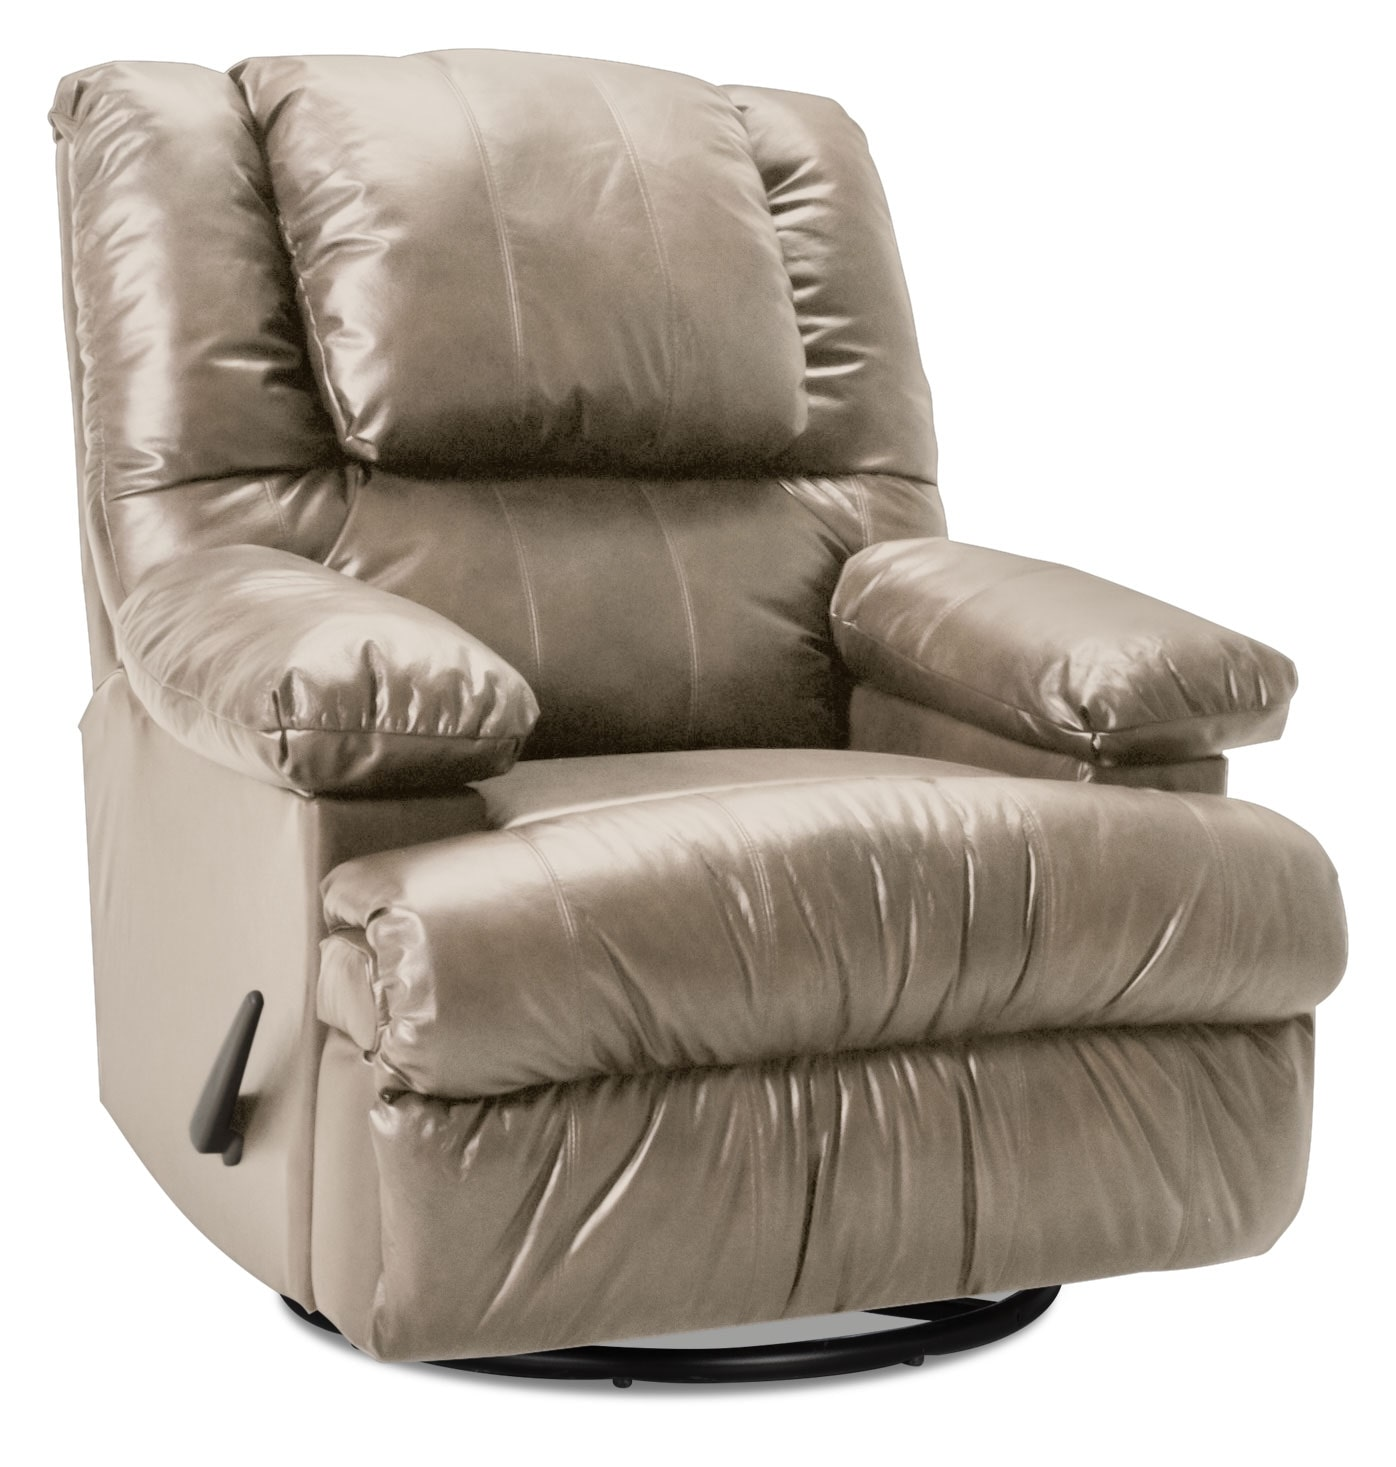 Living Room Furniture - Designed2B Recliner 5598 Bonded Leather Swivel Rocker with Storage Arms - Putty